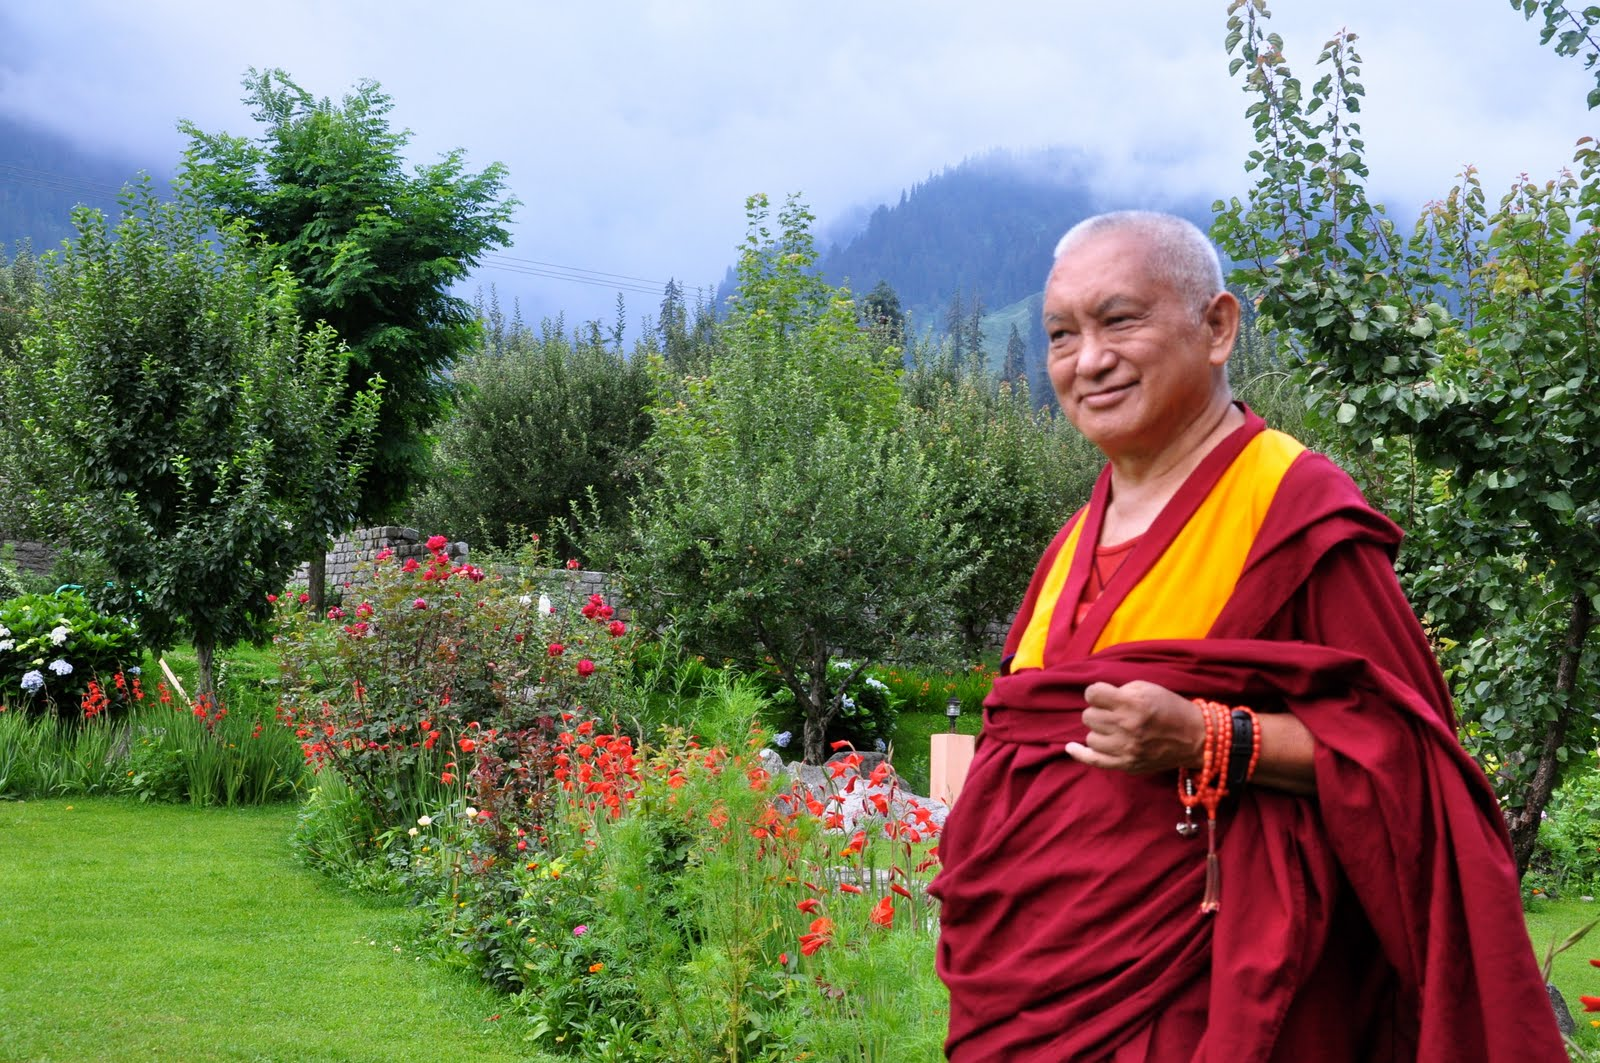 Rinpoche in Manali, India, enjoying the gardens. July, 2013. Photo Ven. Sarah Thresher.